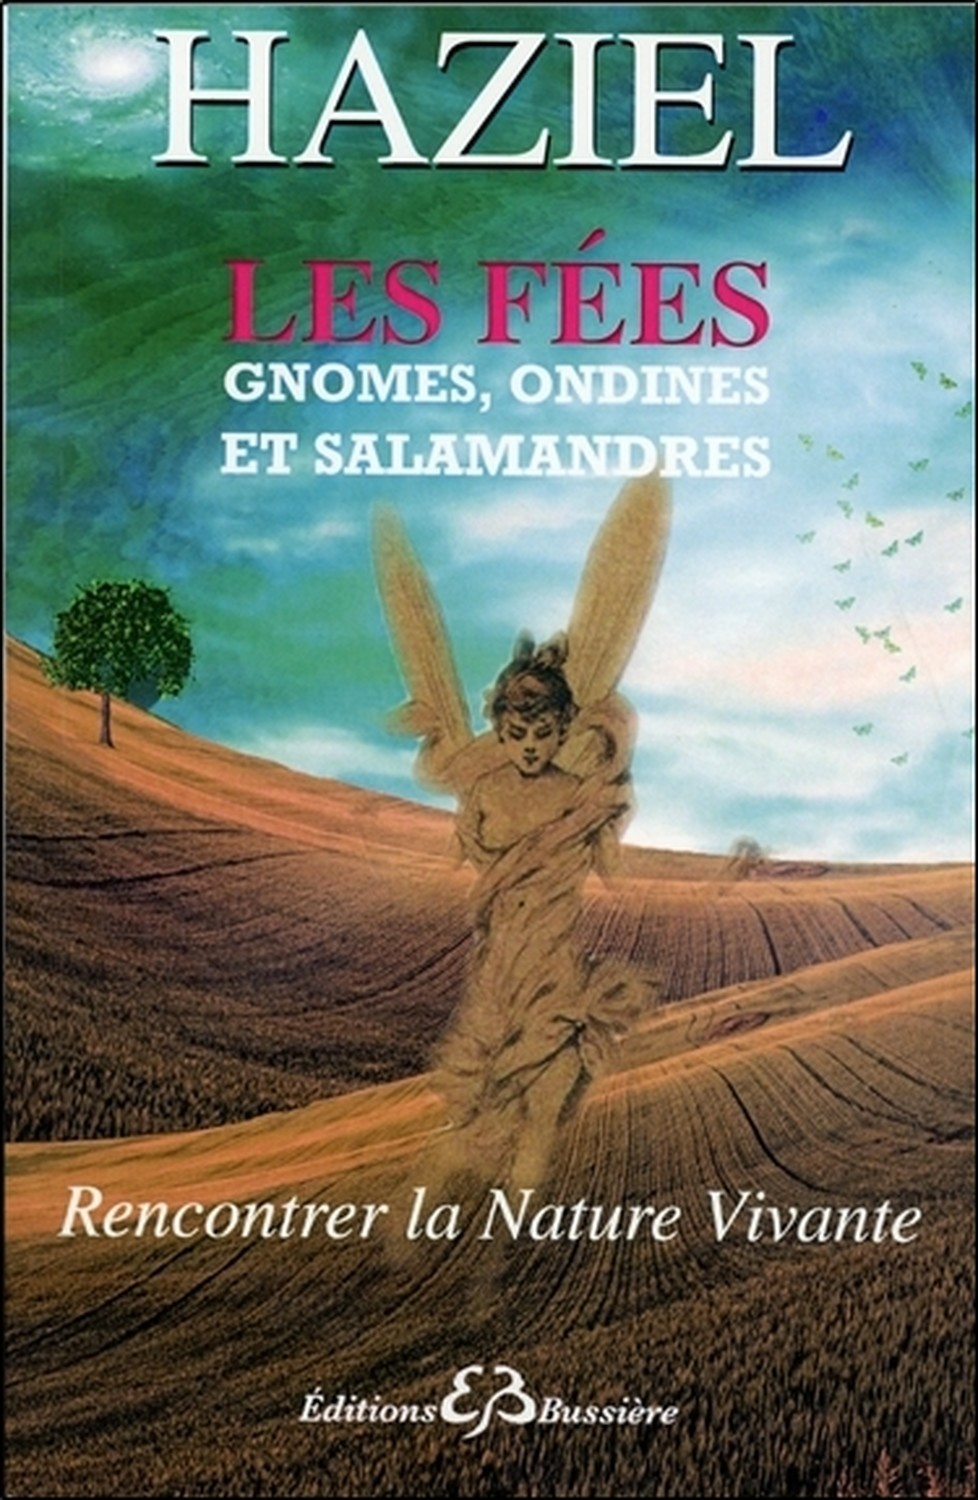 LES FEES, GNOMES, ONDINES ET SALAMANDRES - RENCONTRER LA NATURE VIVANTE